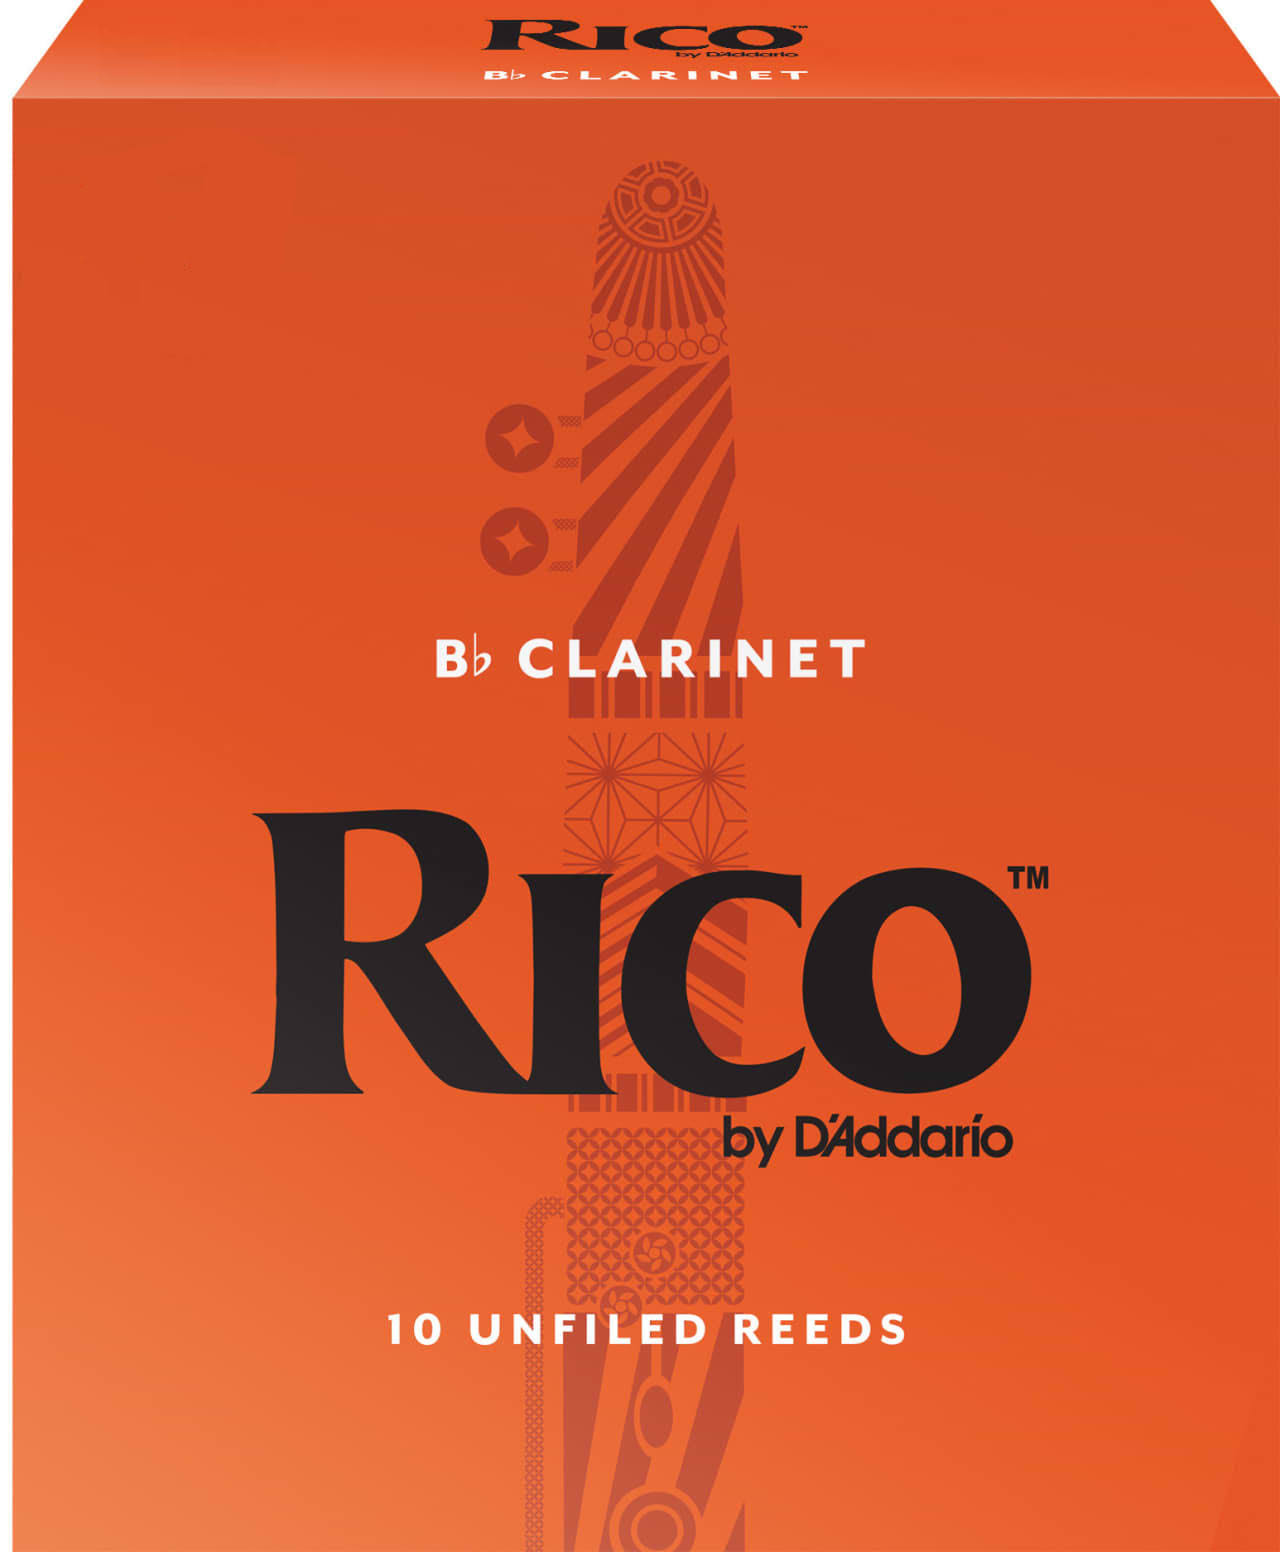 Rico by D'Addario Bb Clarinet Reeds - Strength 2.0, 10 Unfiled Reeds